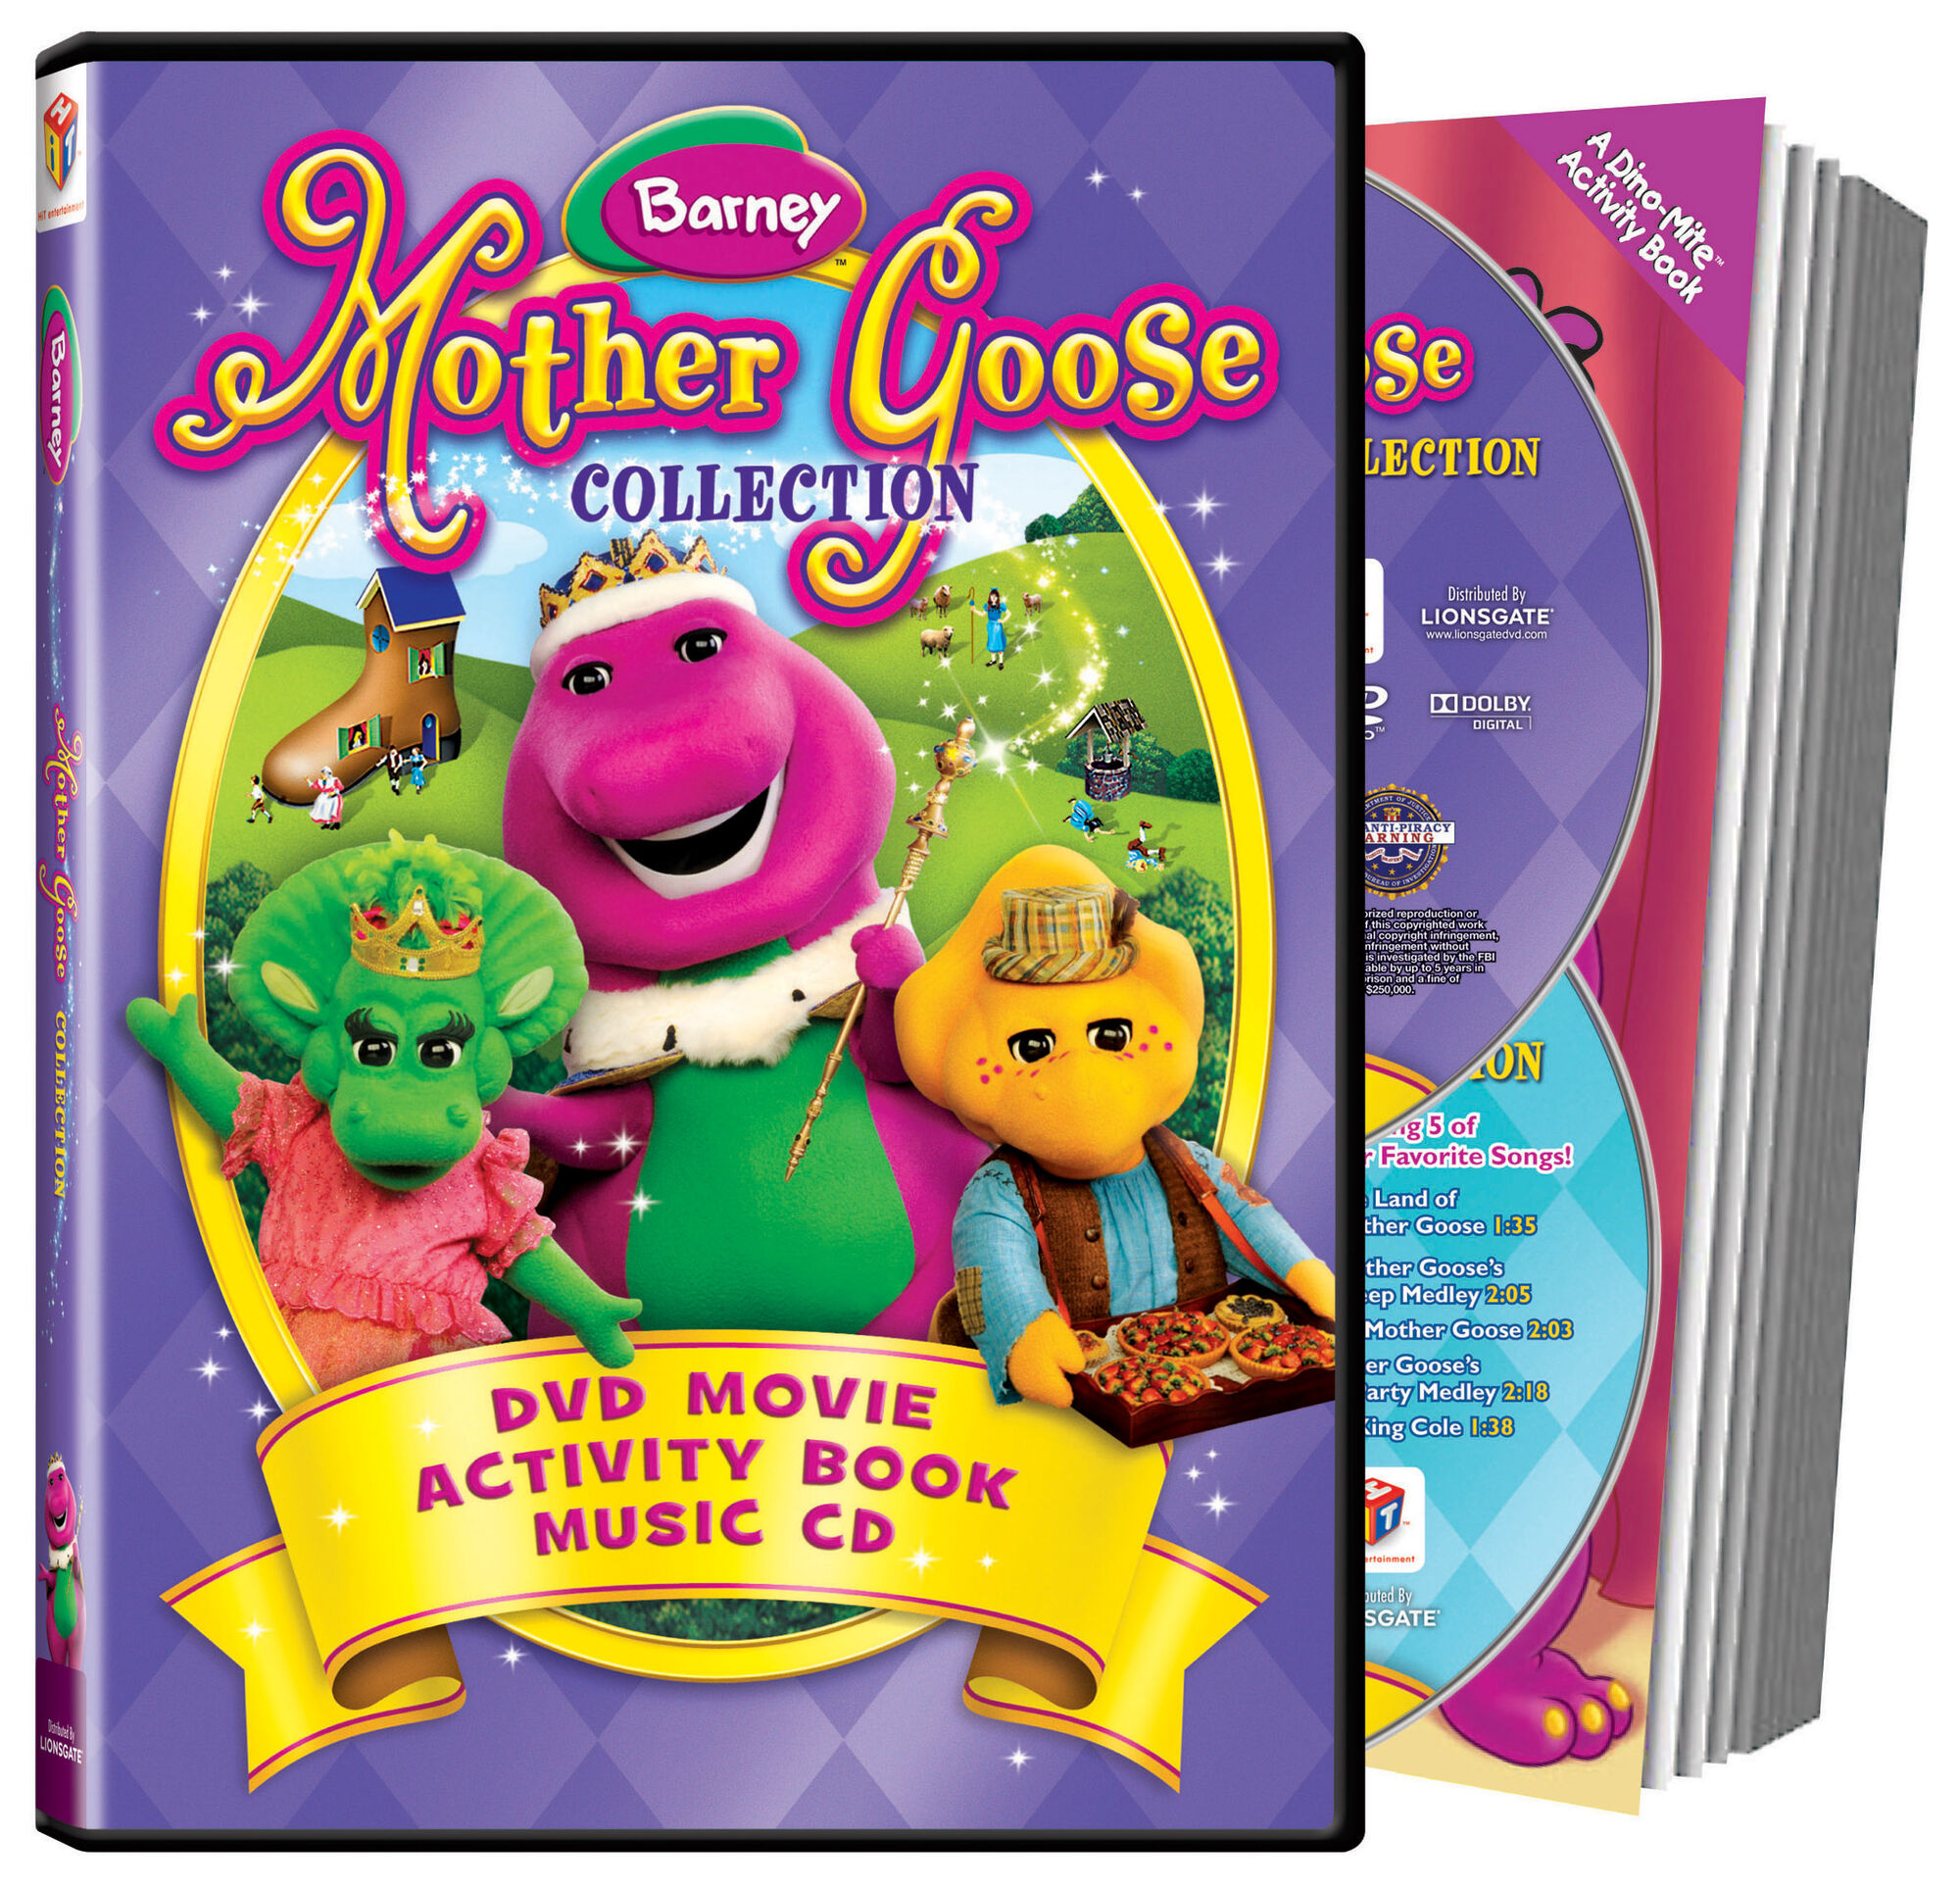 image barney mother goose collection dvd jpg barney wiki